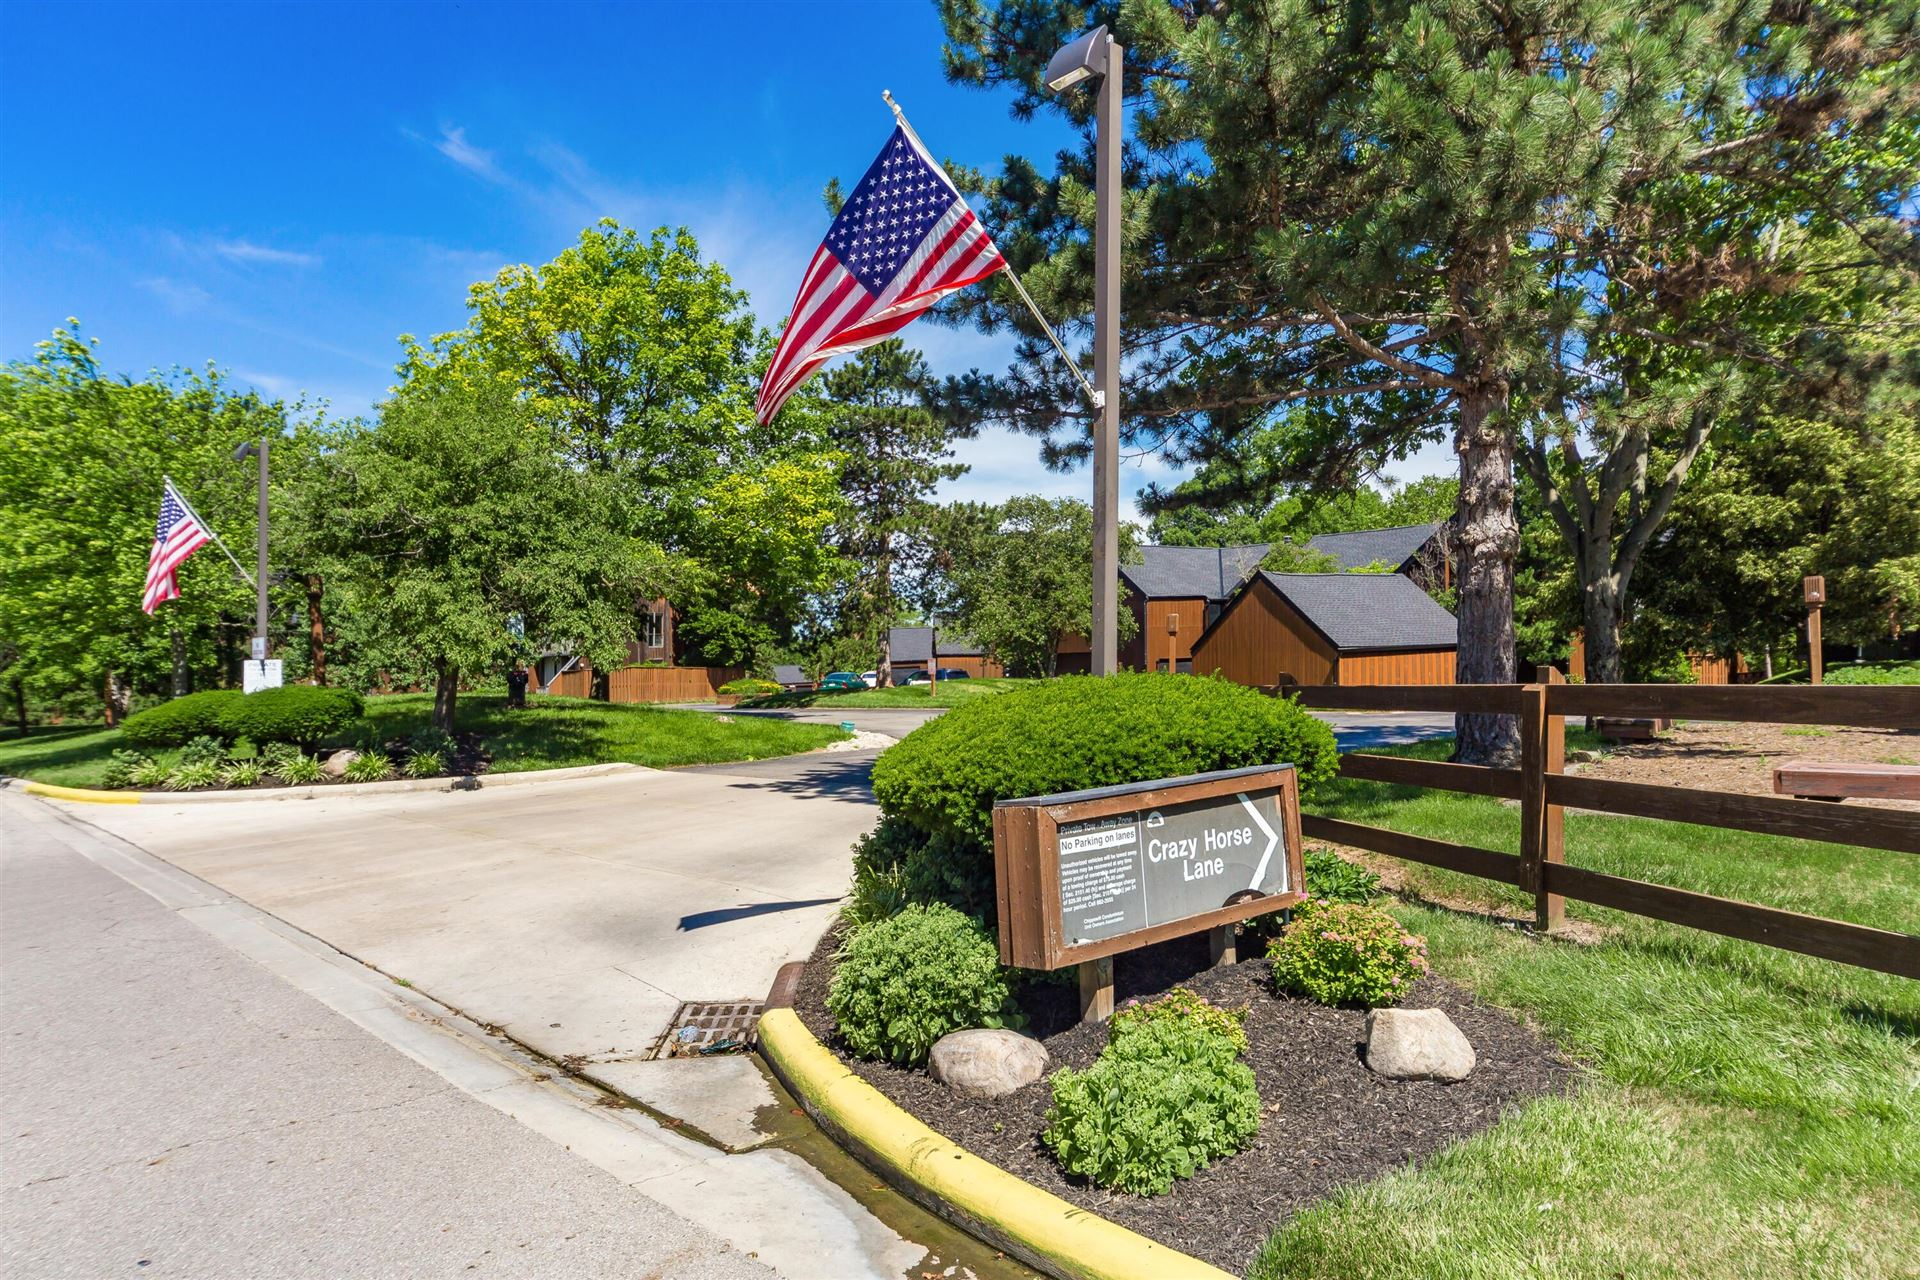 Photo of 4844 Crazy Horse Lane #10, Westerville, OH 43081 (MLS # 221022076)